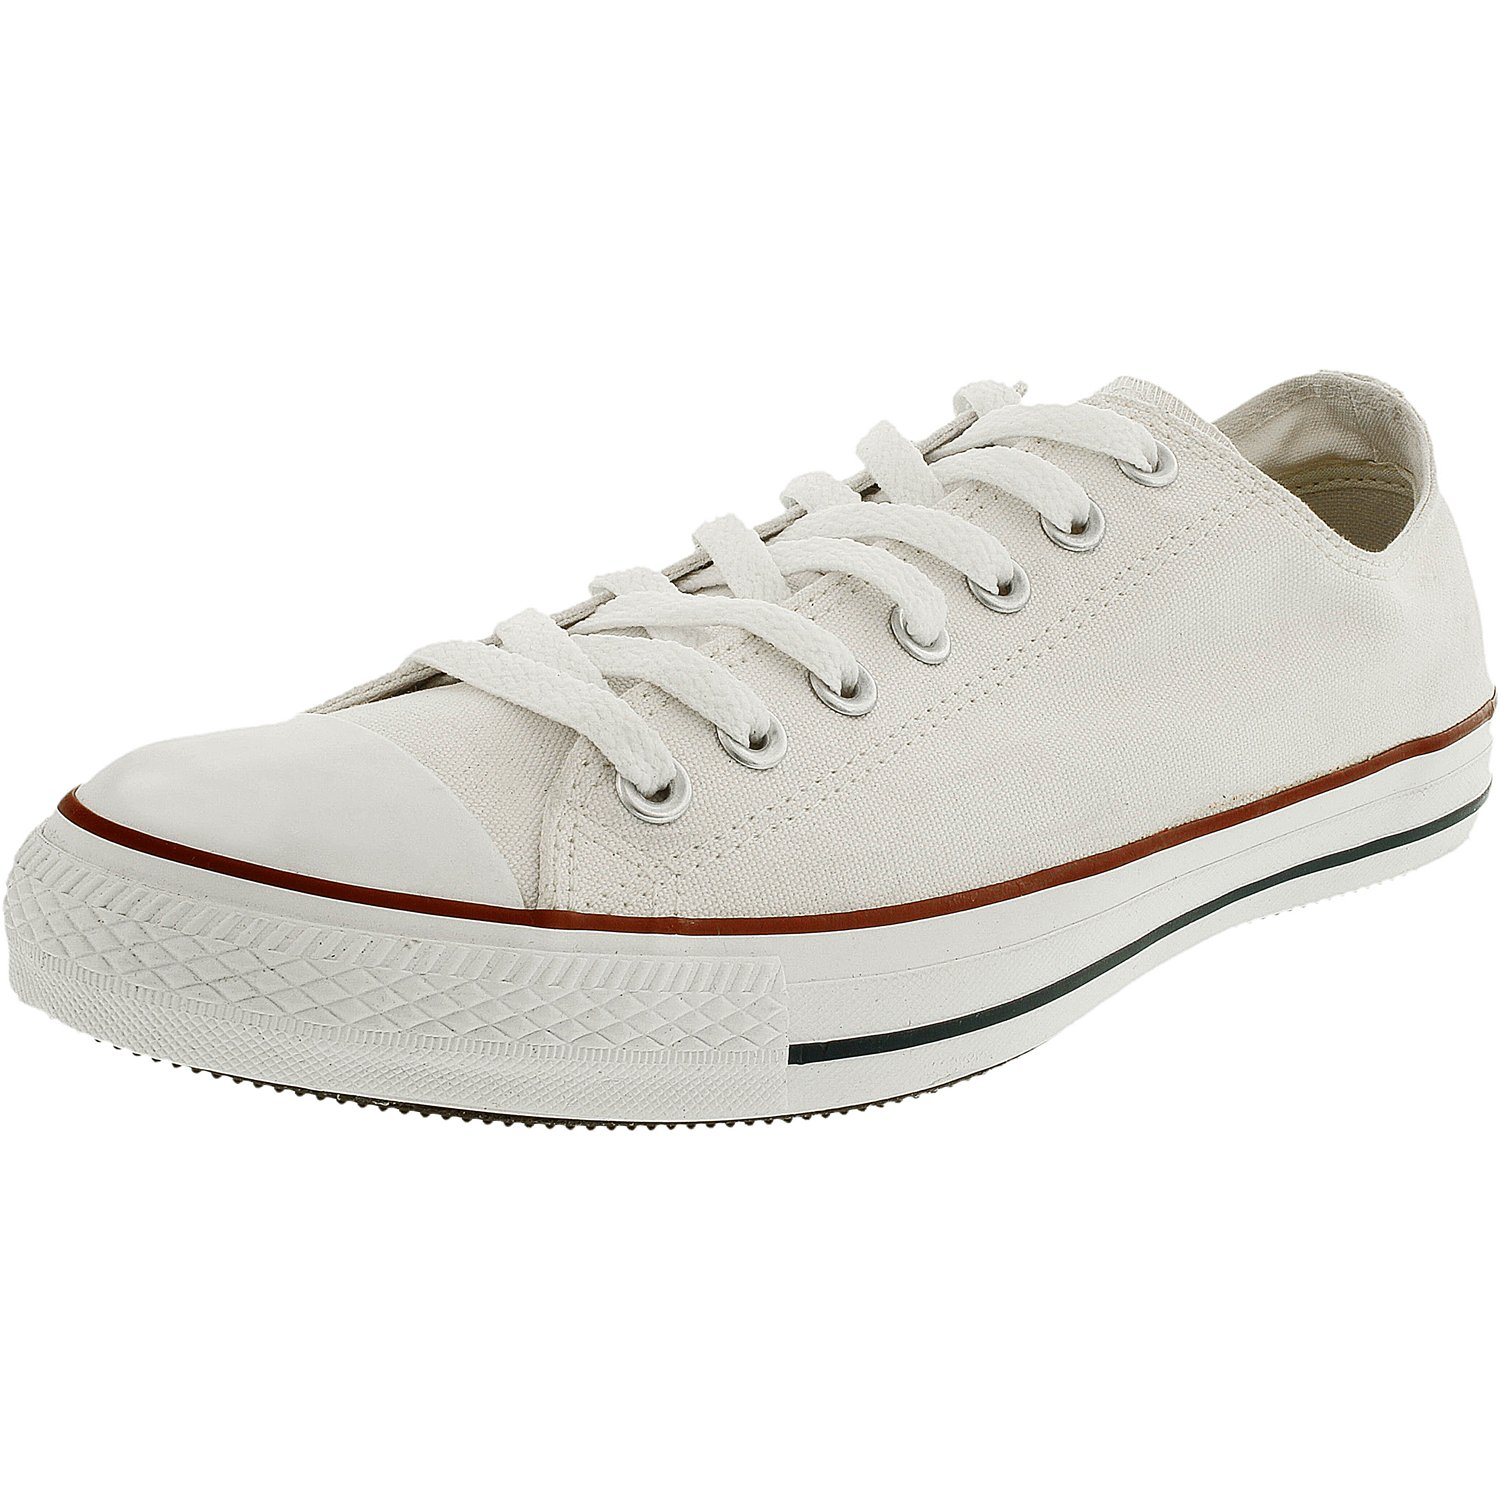 converse chuck taylor athletic shoes